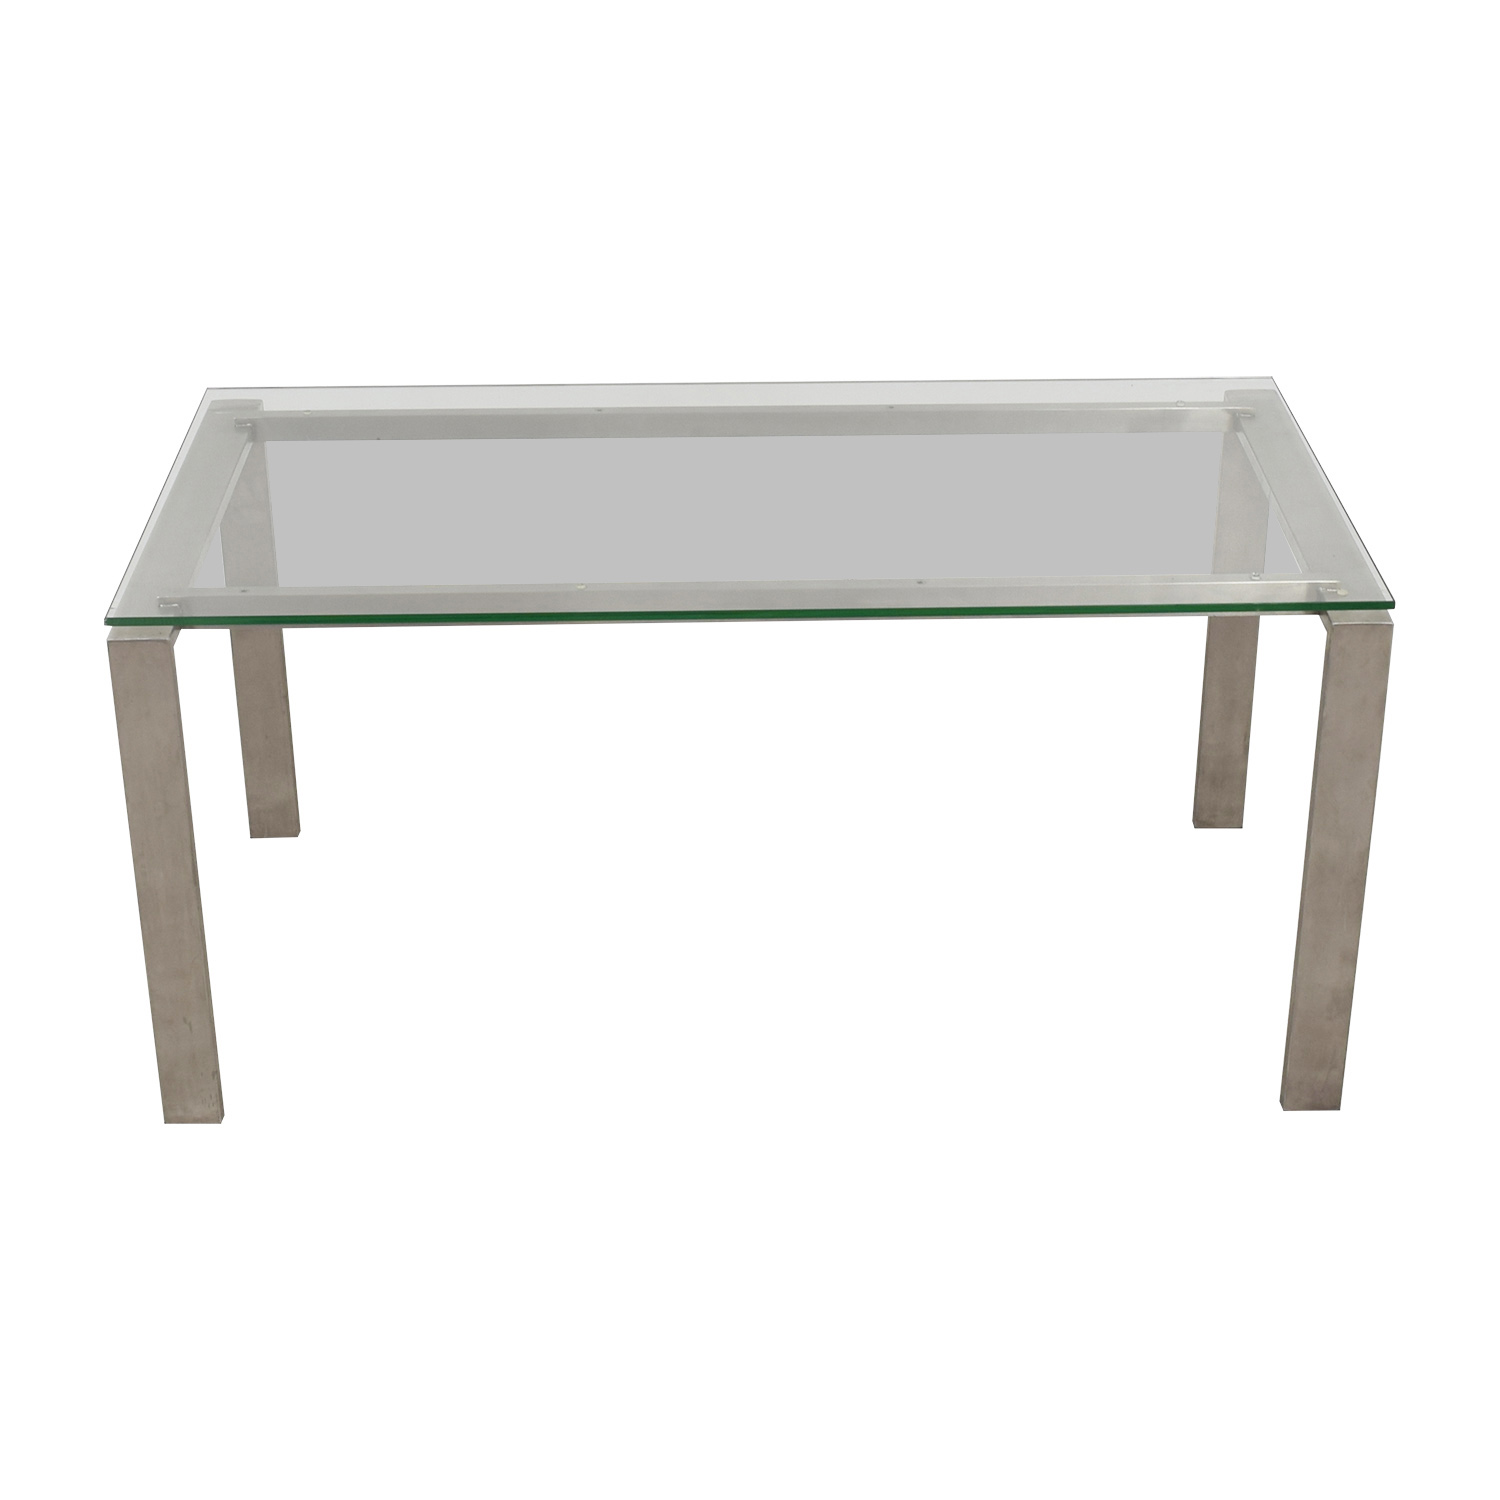 Room & Board Room & Board Rand Stainless Steel and Glass Dining Table Dinner Tables